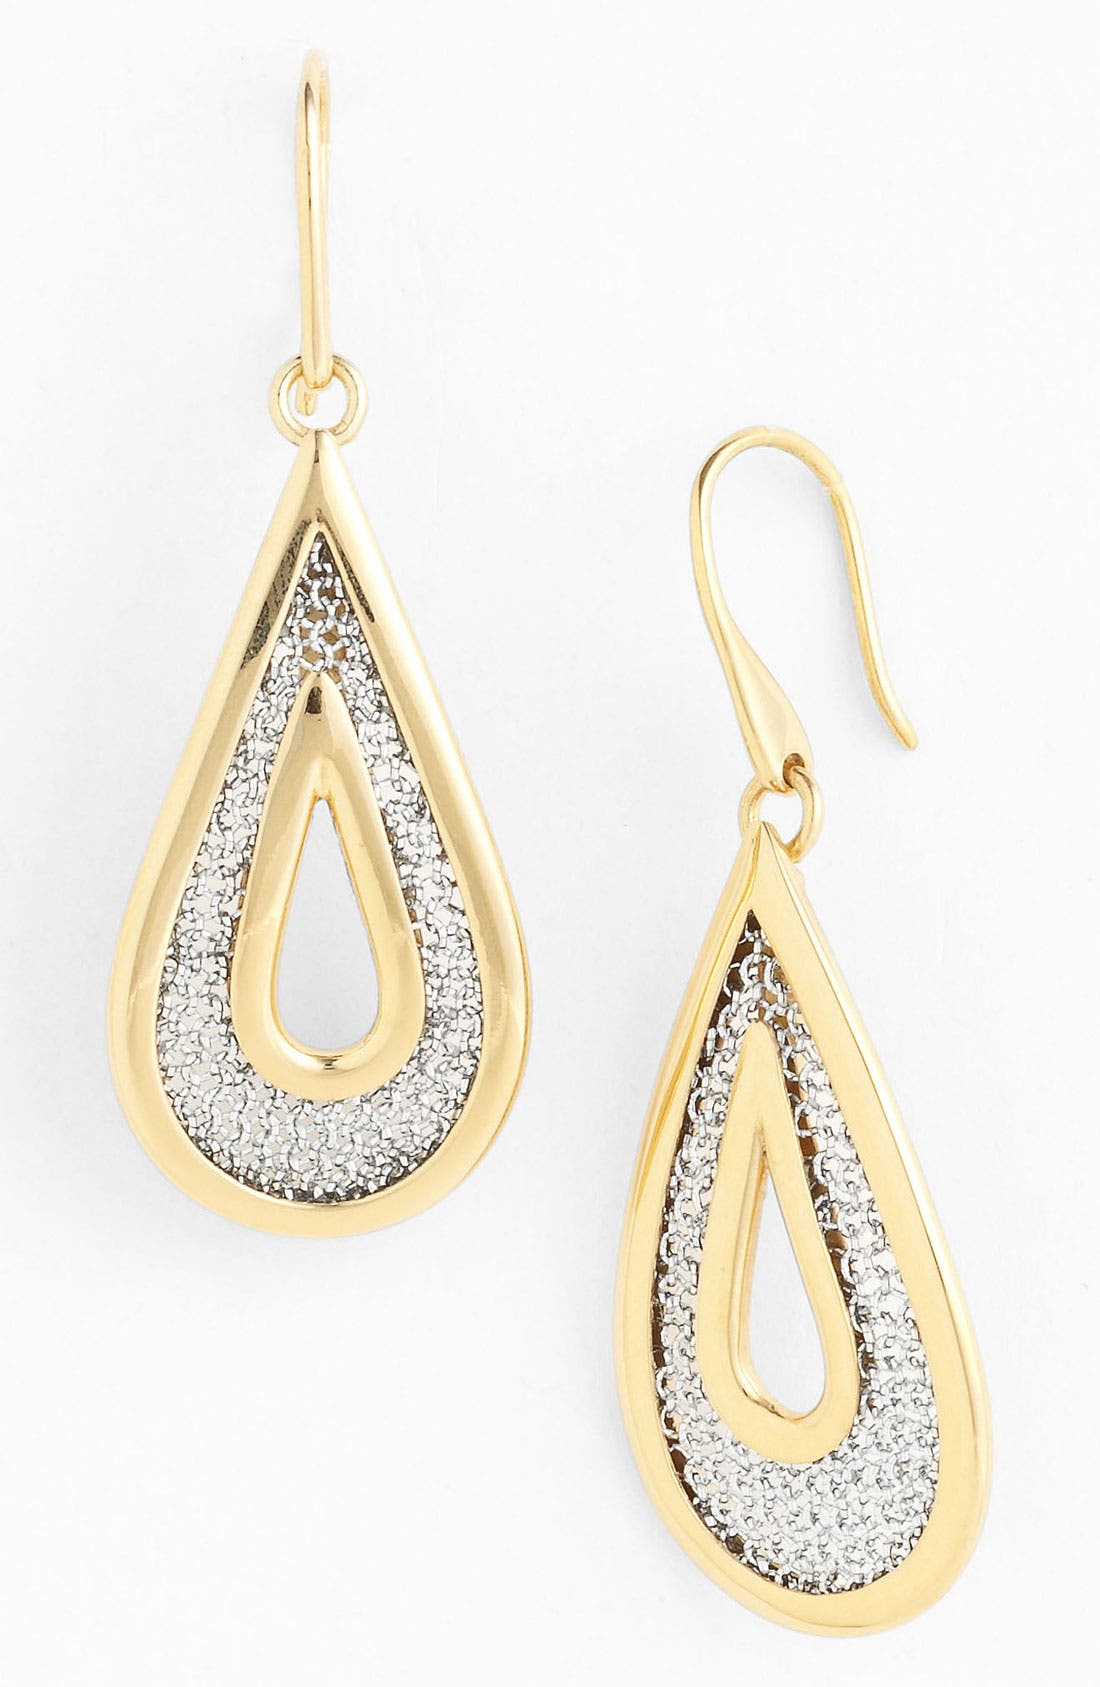 Alternate Image 1 Selected - Adami & Martucci 'Mesh' Small Open Teardrop Earrings (Nordstrom Exclusive)